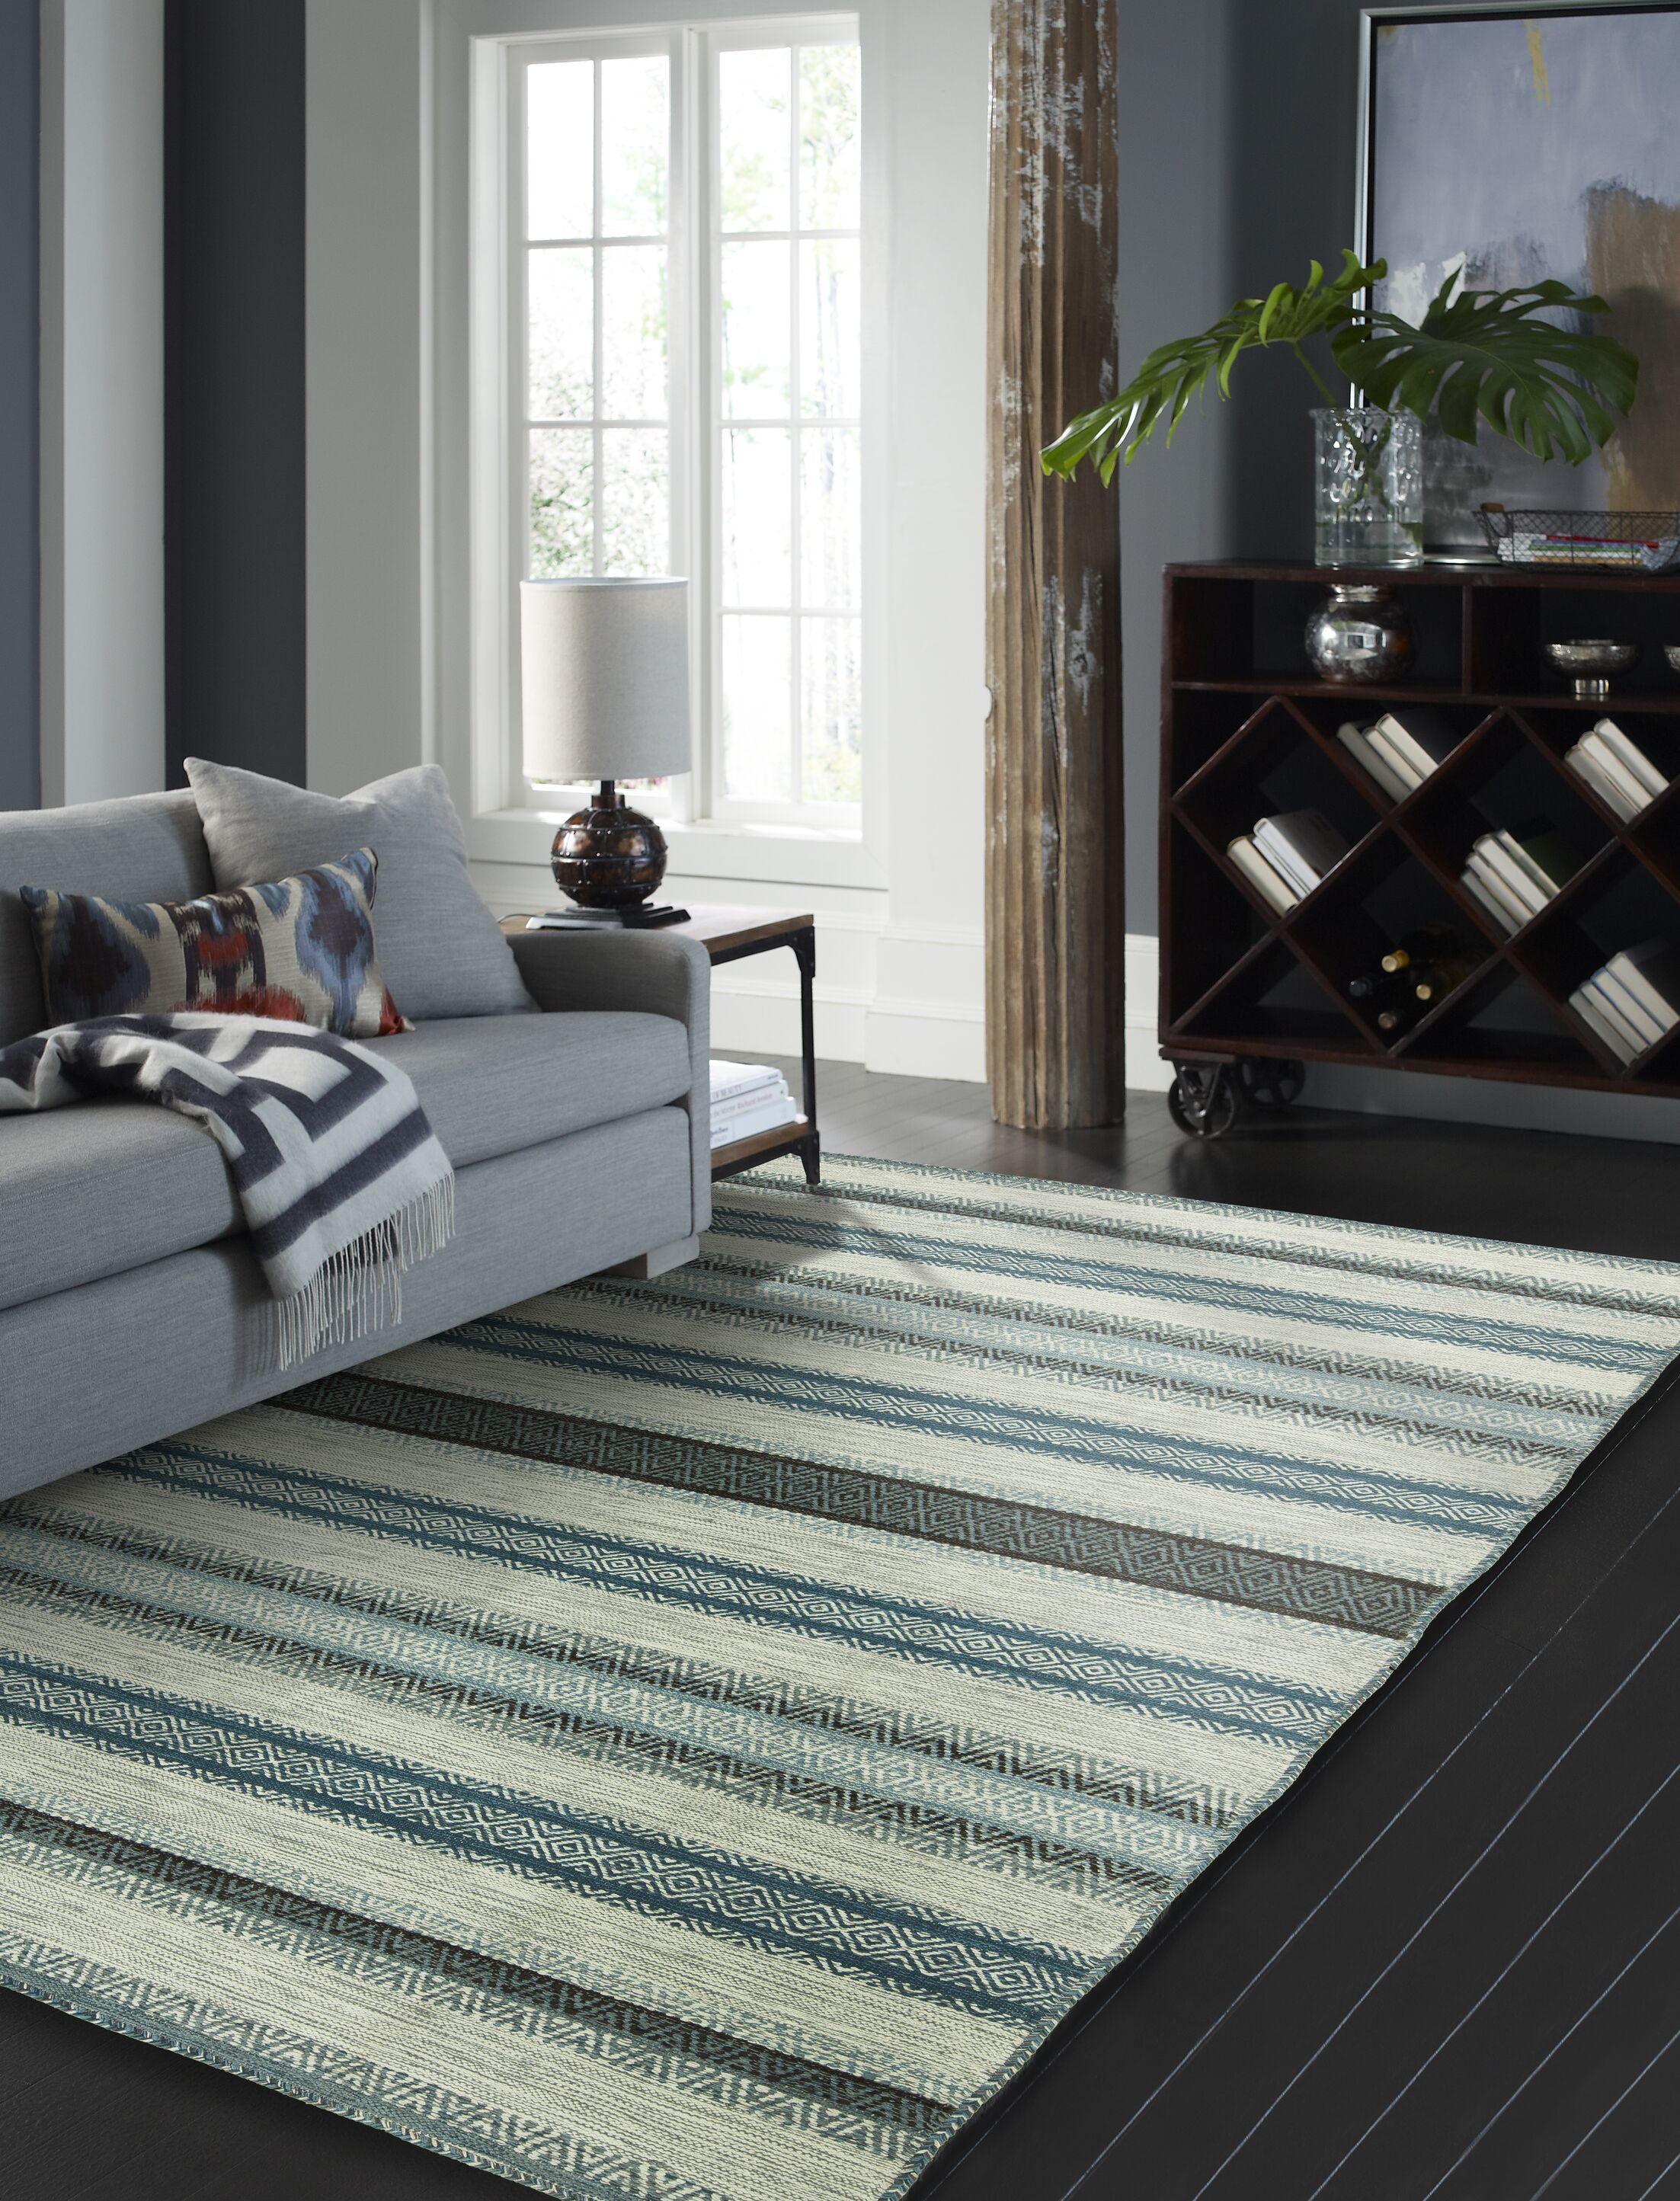 Phillipston Hand-Knotted Cotton Turquoise/Gray Area Rug Rug Size: Rectangle 7'6